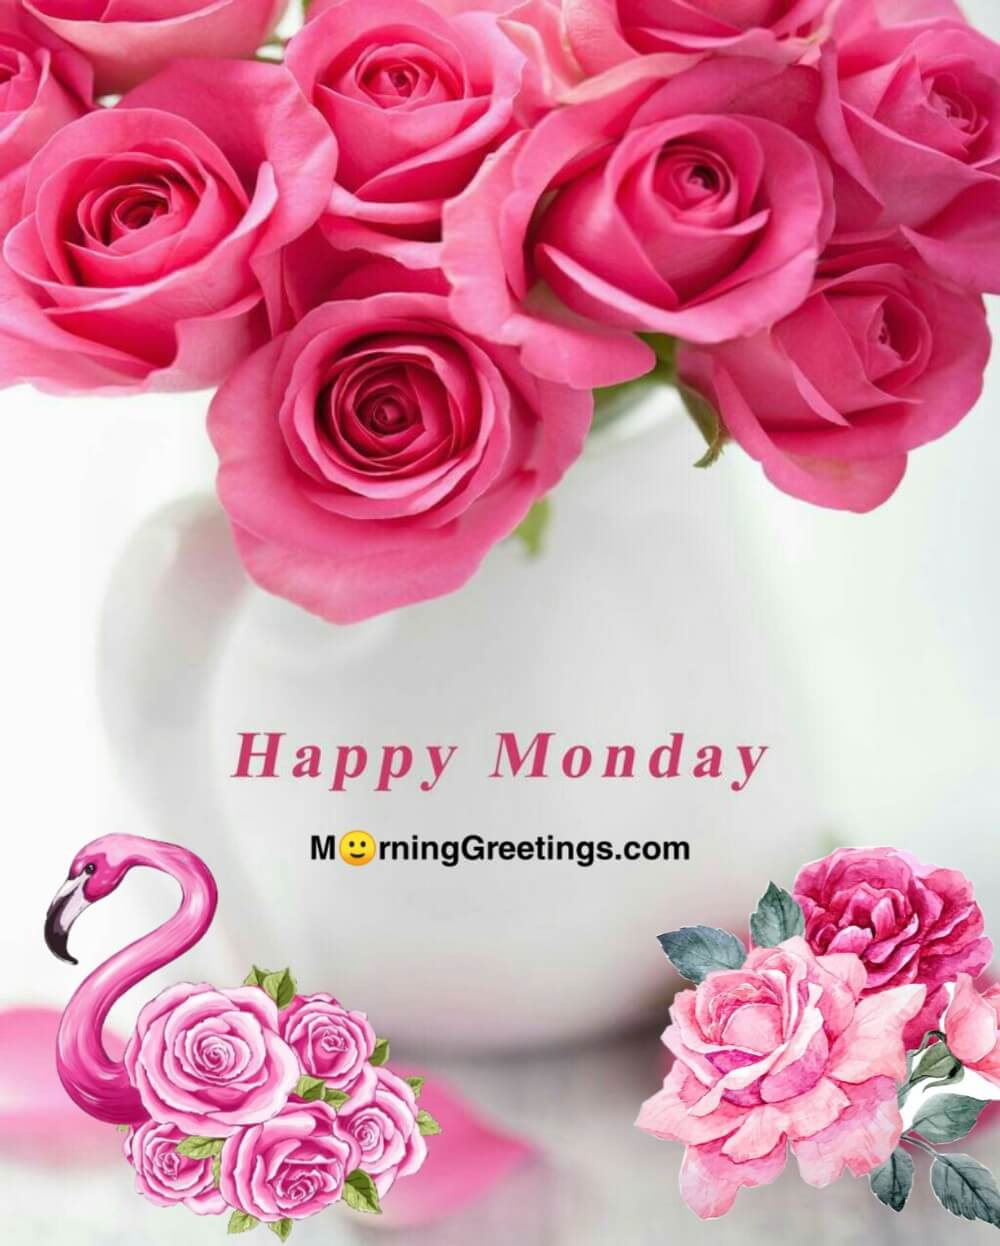 70 Best Monday Morning Quotes Wishes Pics Morning Greetings Morning Wishes